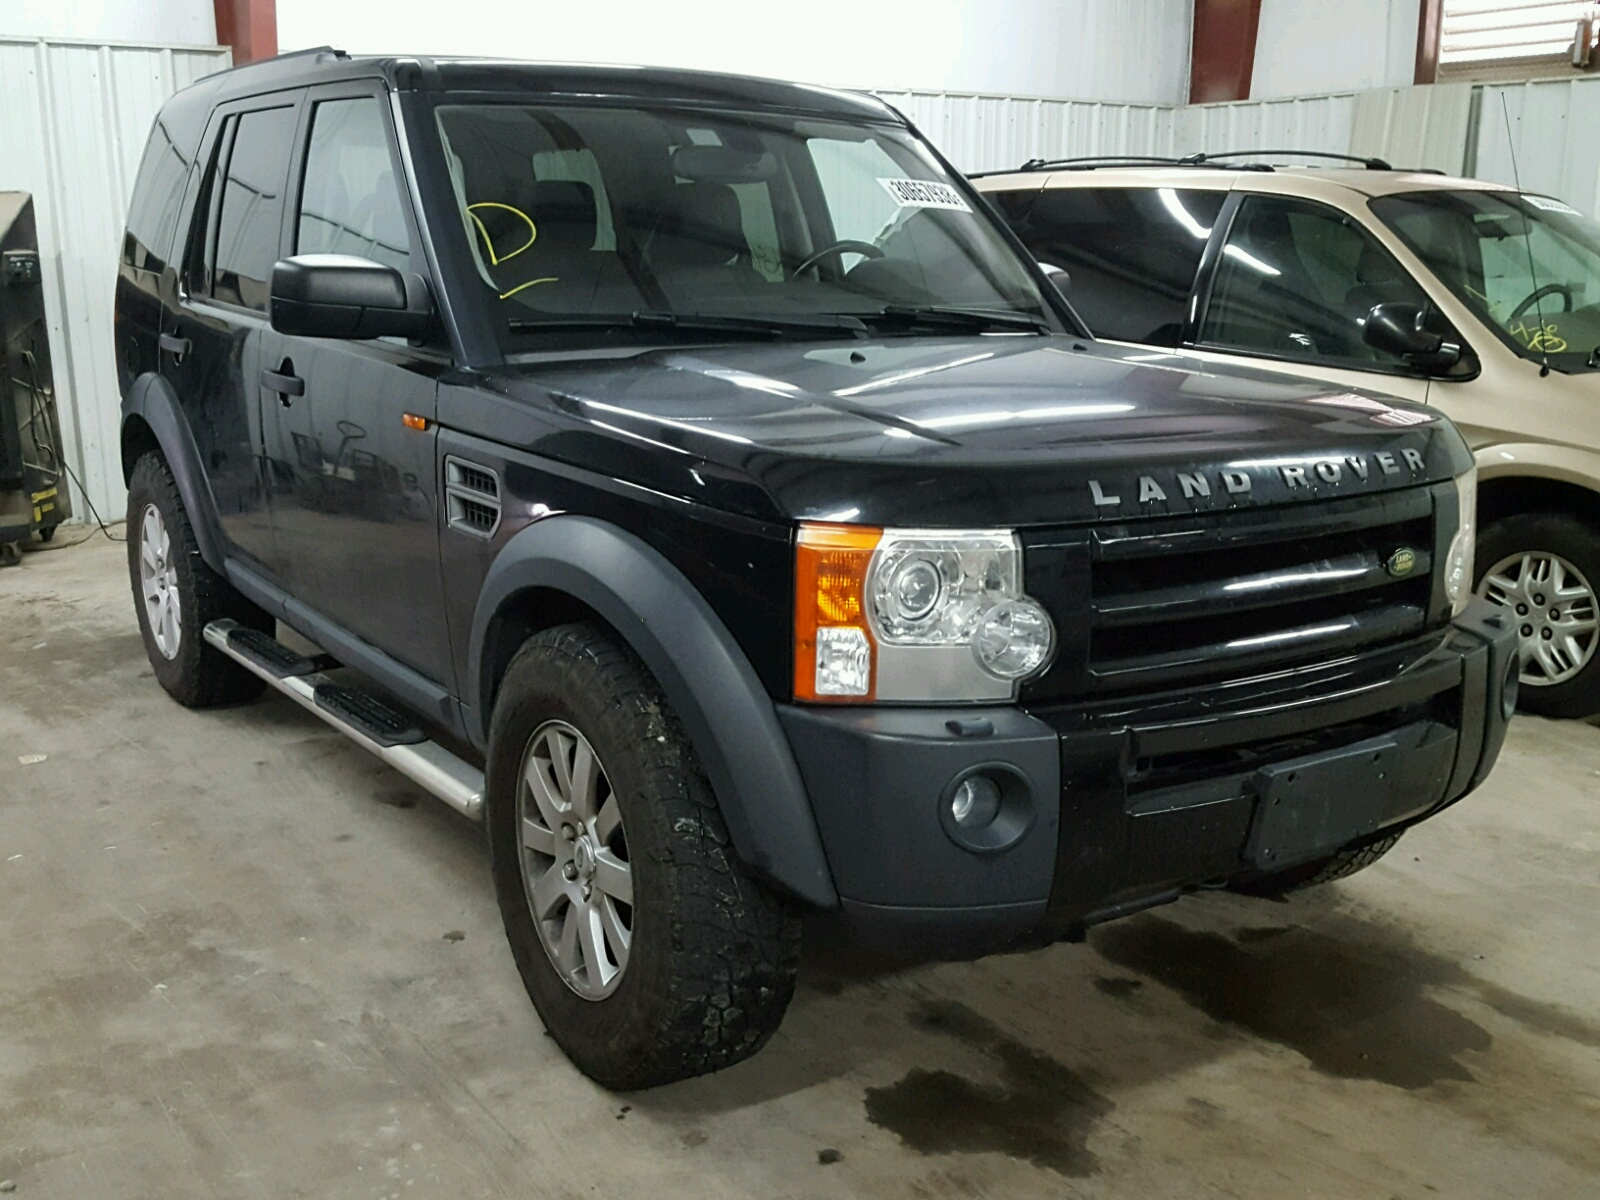 copart landrover hse billerica for rover north ma land cars lot sale at